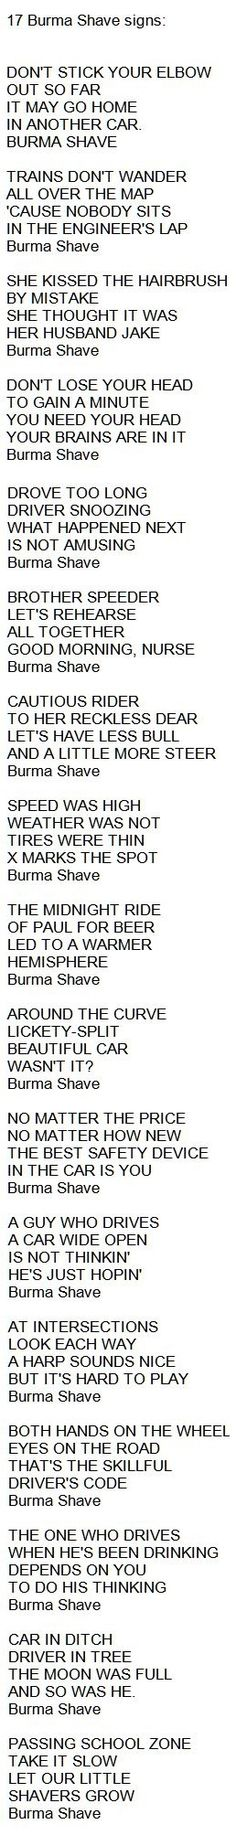 The Words to 17 Burma Shave Signs